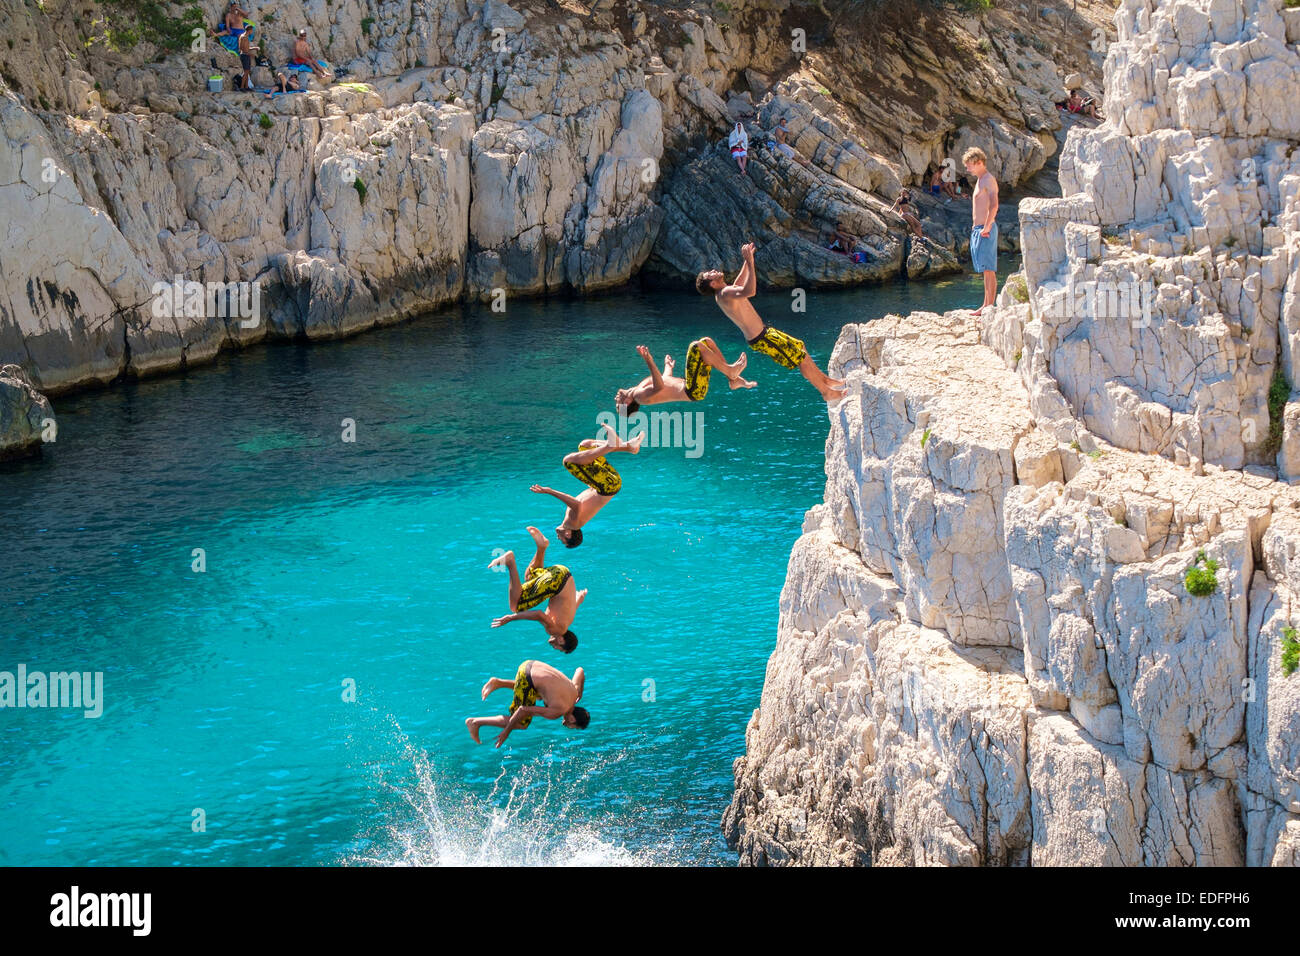 Miltiple exposure composite image of man doing a backflip from a rocky outcrop at Calanque de Sugiton - Stock Image